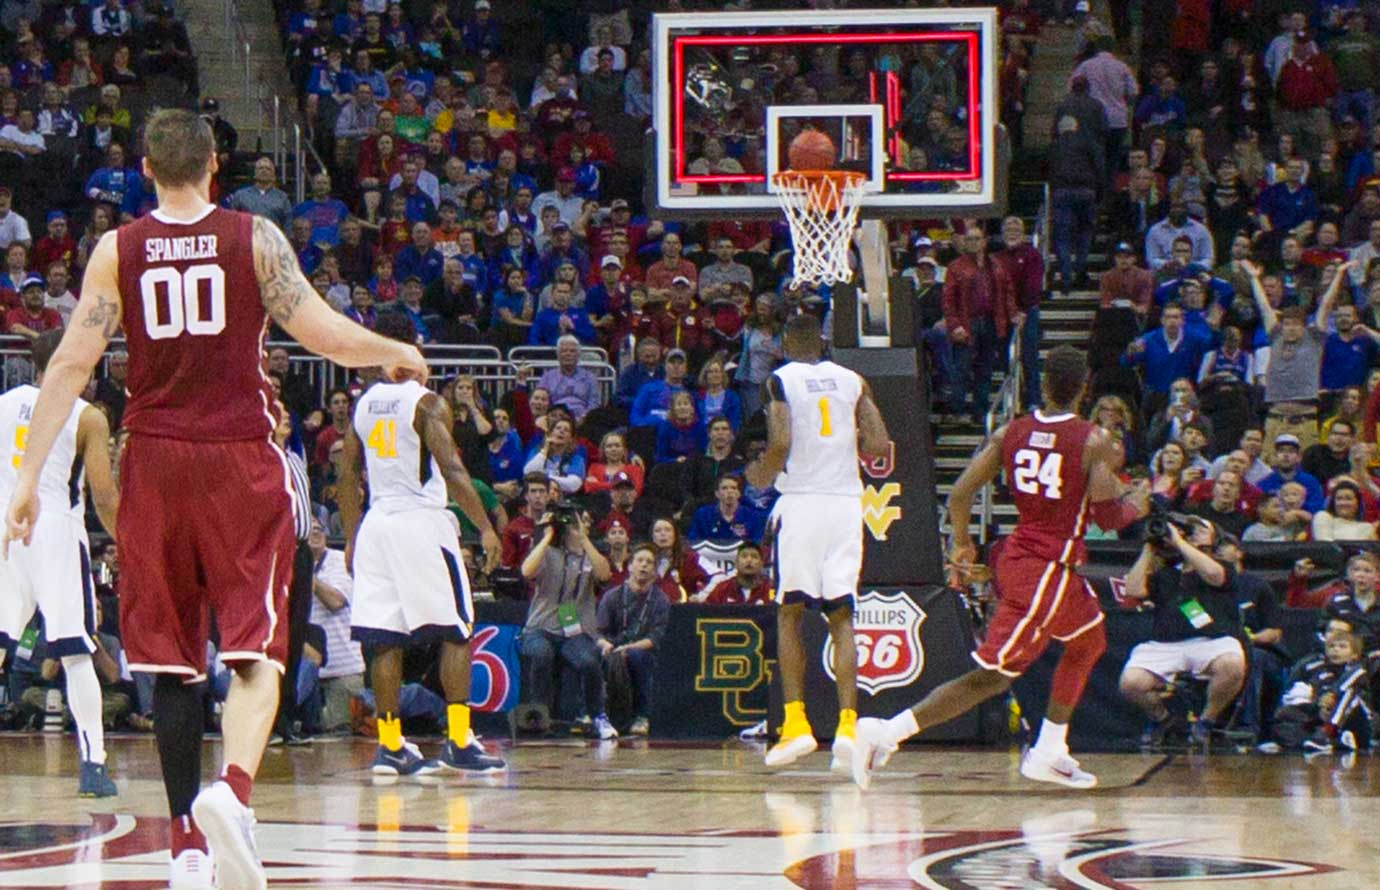 Oklahoma's Buddy Hield (24) watches his 55-foot three-point shot go in for what would have been a 70-69 victory for the Sooners, but officials later ruled the ball hadn't left his hand before time expired.